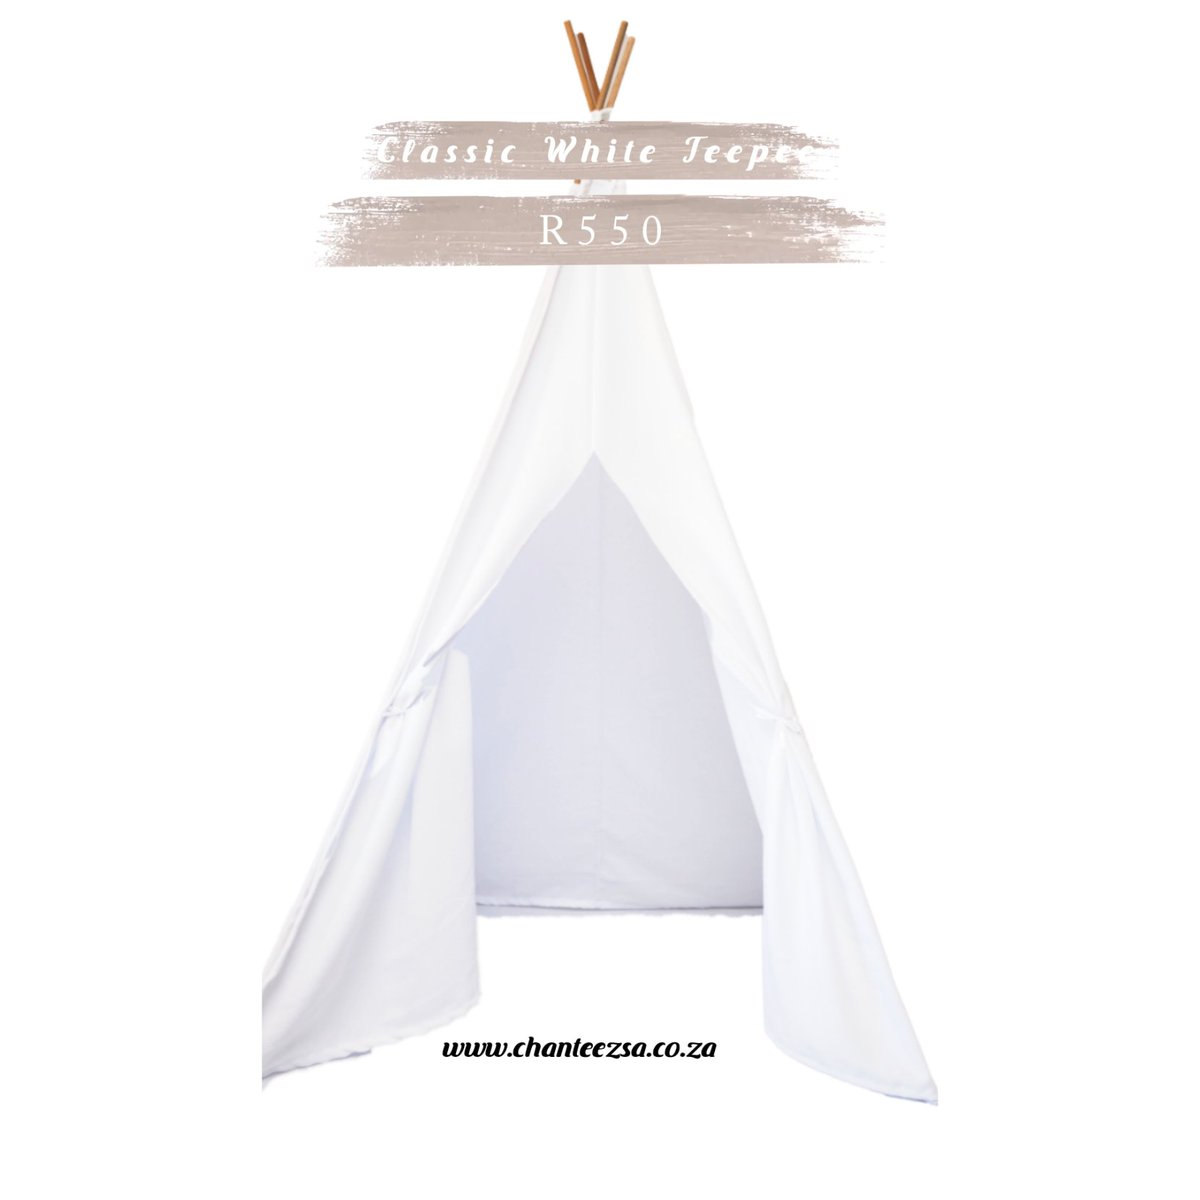 ChanteezSA Teepee Tents  The perfect way to keep your children entertained. Contact us via WA on 0832825794 or visit us at http://www.chanteezsa.co.za #teepeetent #kids #toddlerrooms #babyandtoddler #nursery #toddler #proudlysaproducts #supportlocalbusiness #chanteezsapic.twitter.com/GcHjXEgoAn